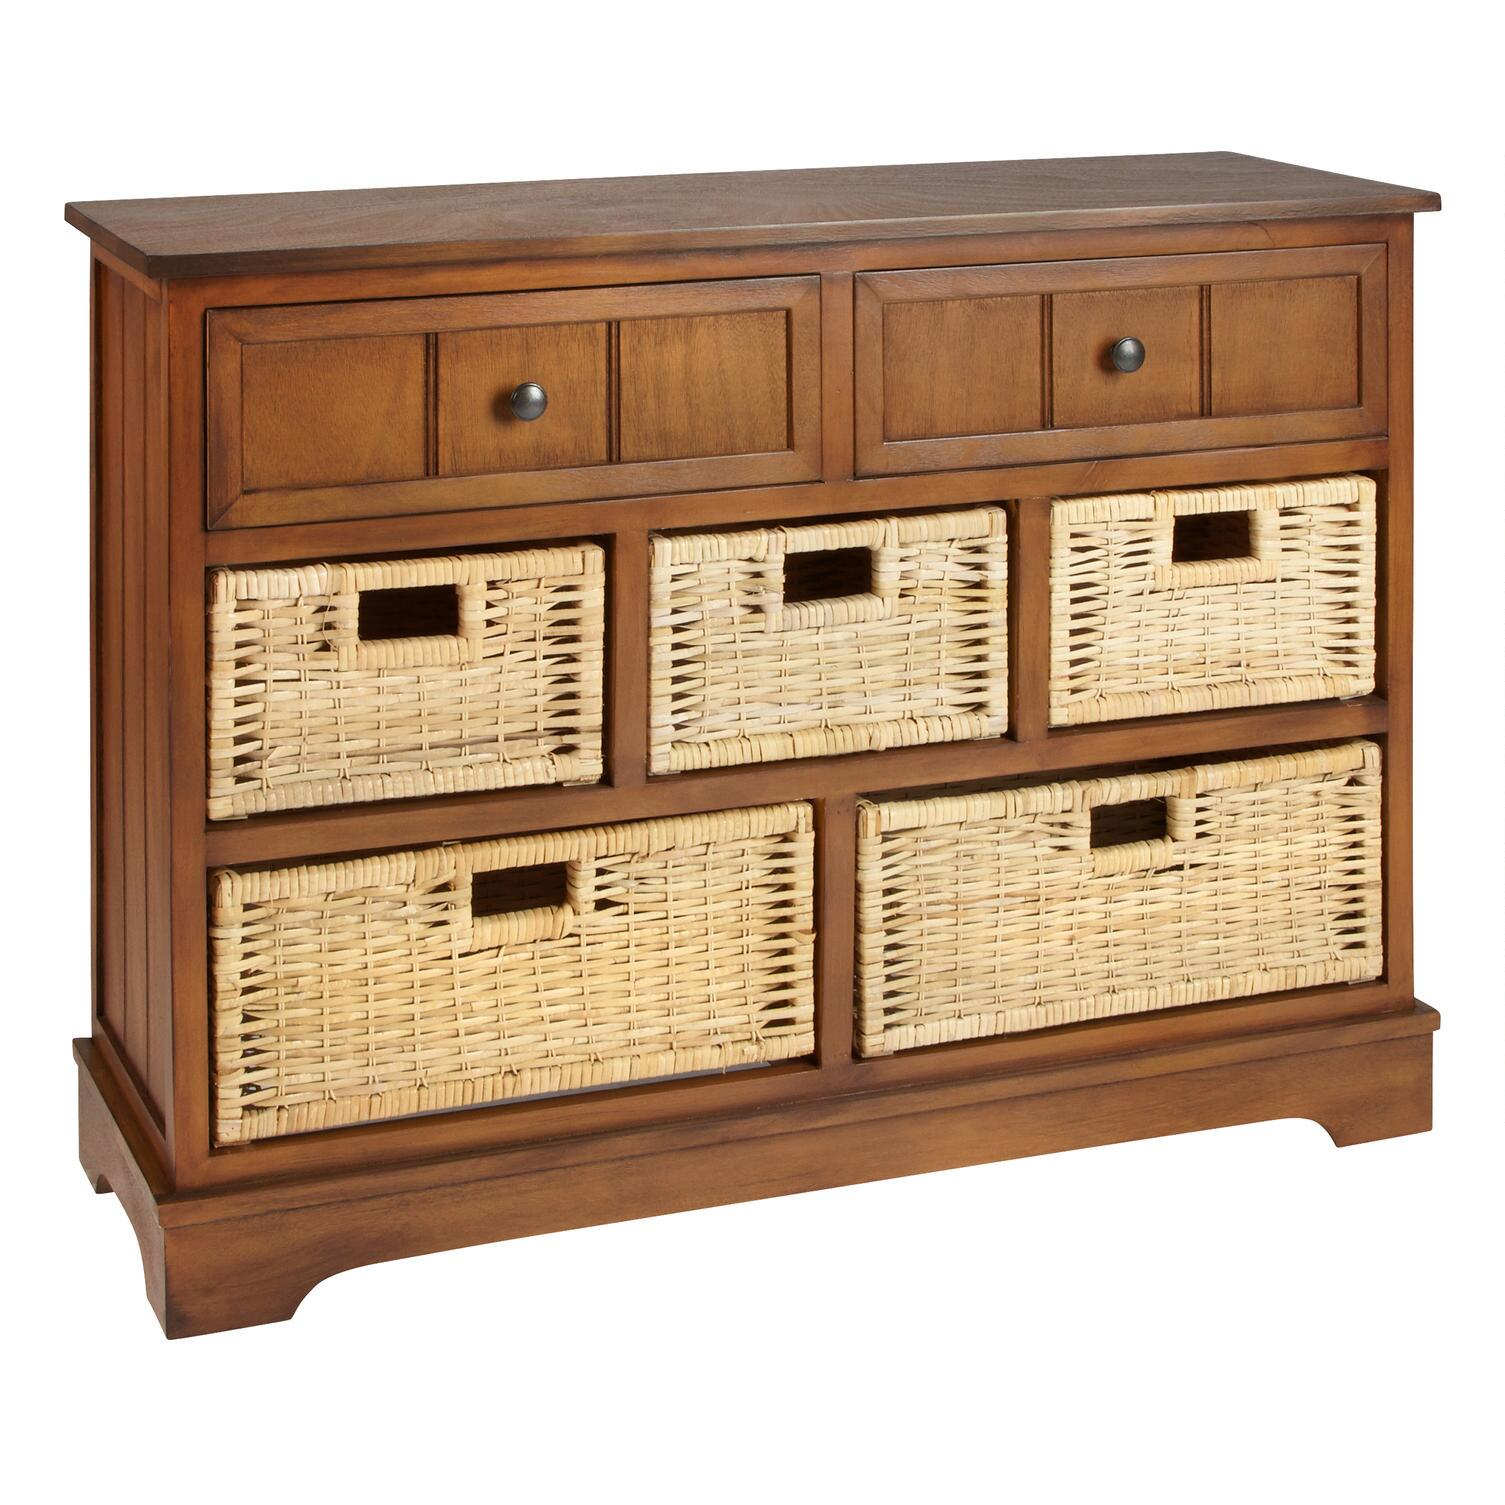 Chelsea Honey 5 Basket/2 Drawer Cabinet